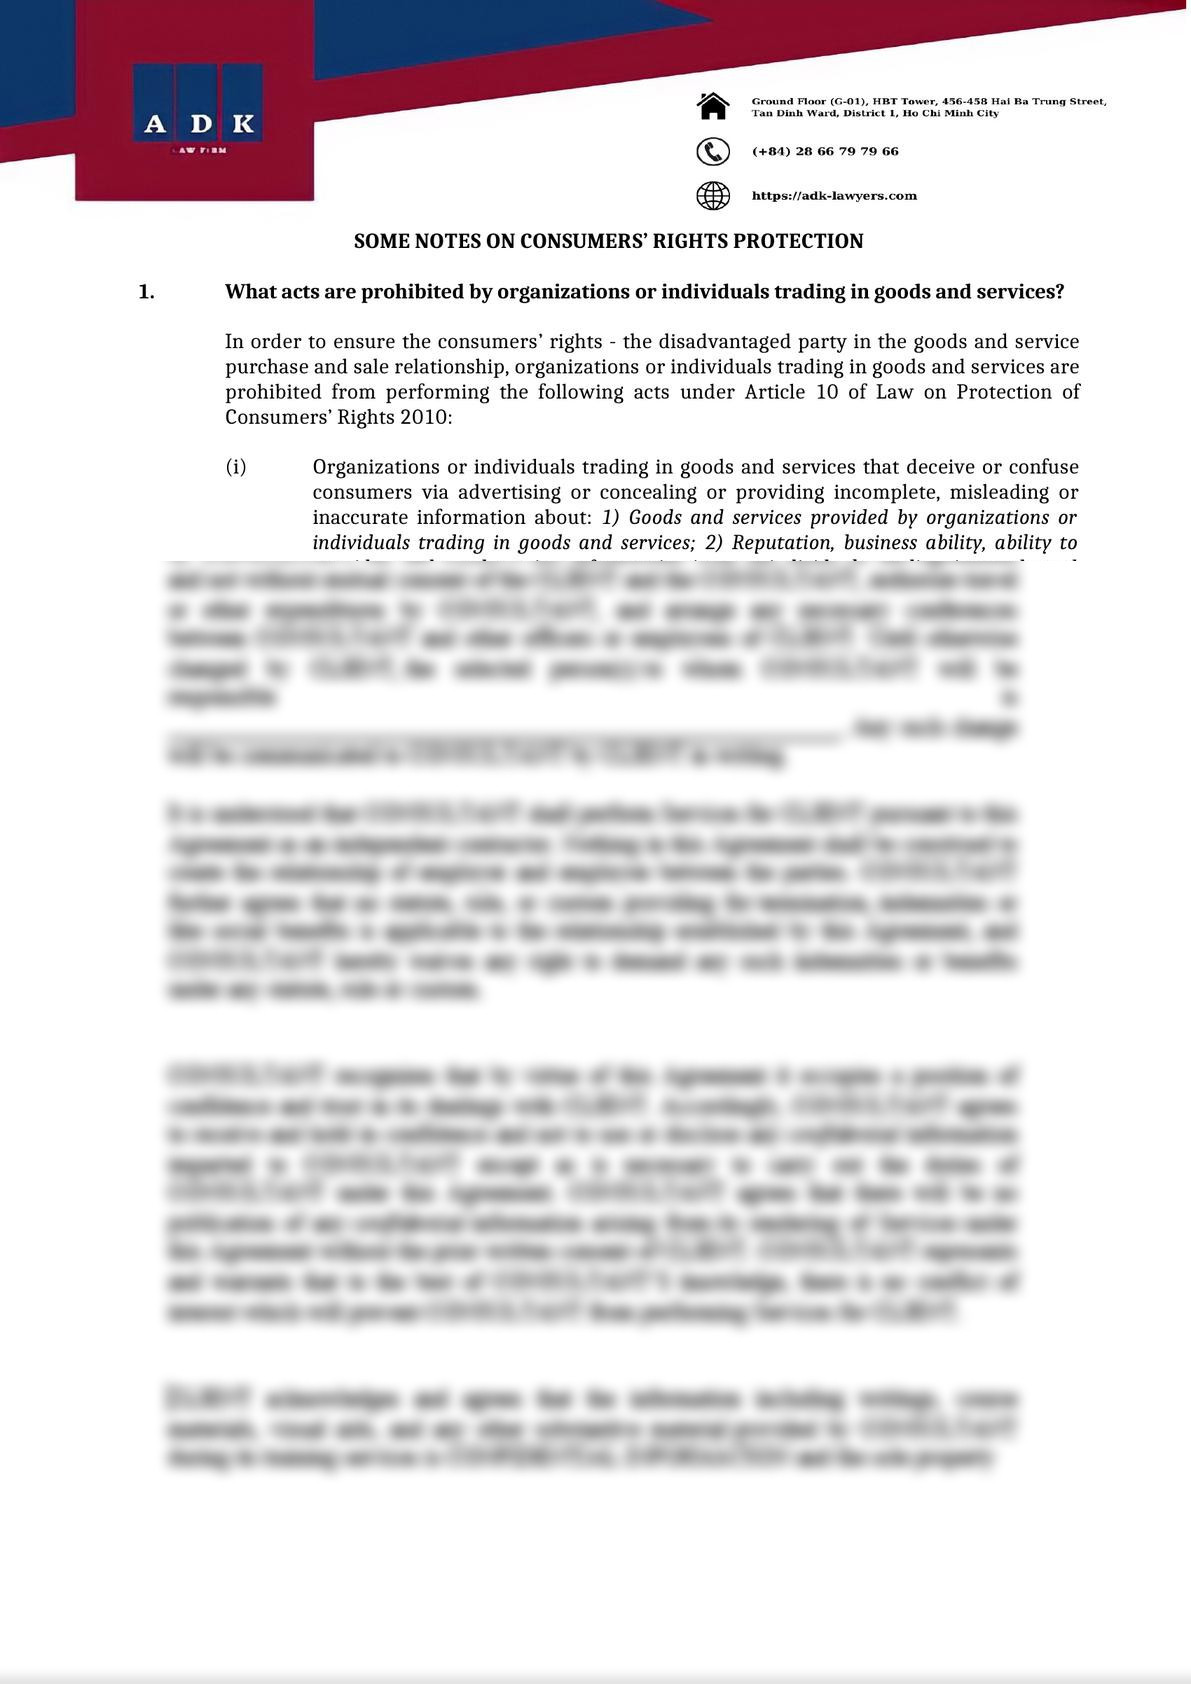 SOME NOTES ON CONSUMERS' RIGHTS PROTECTION-0